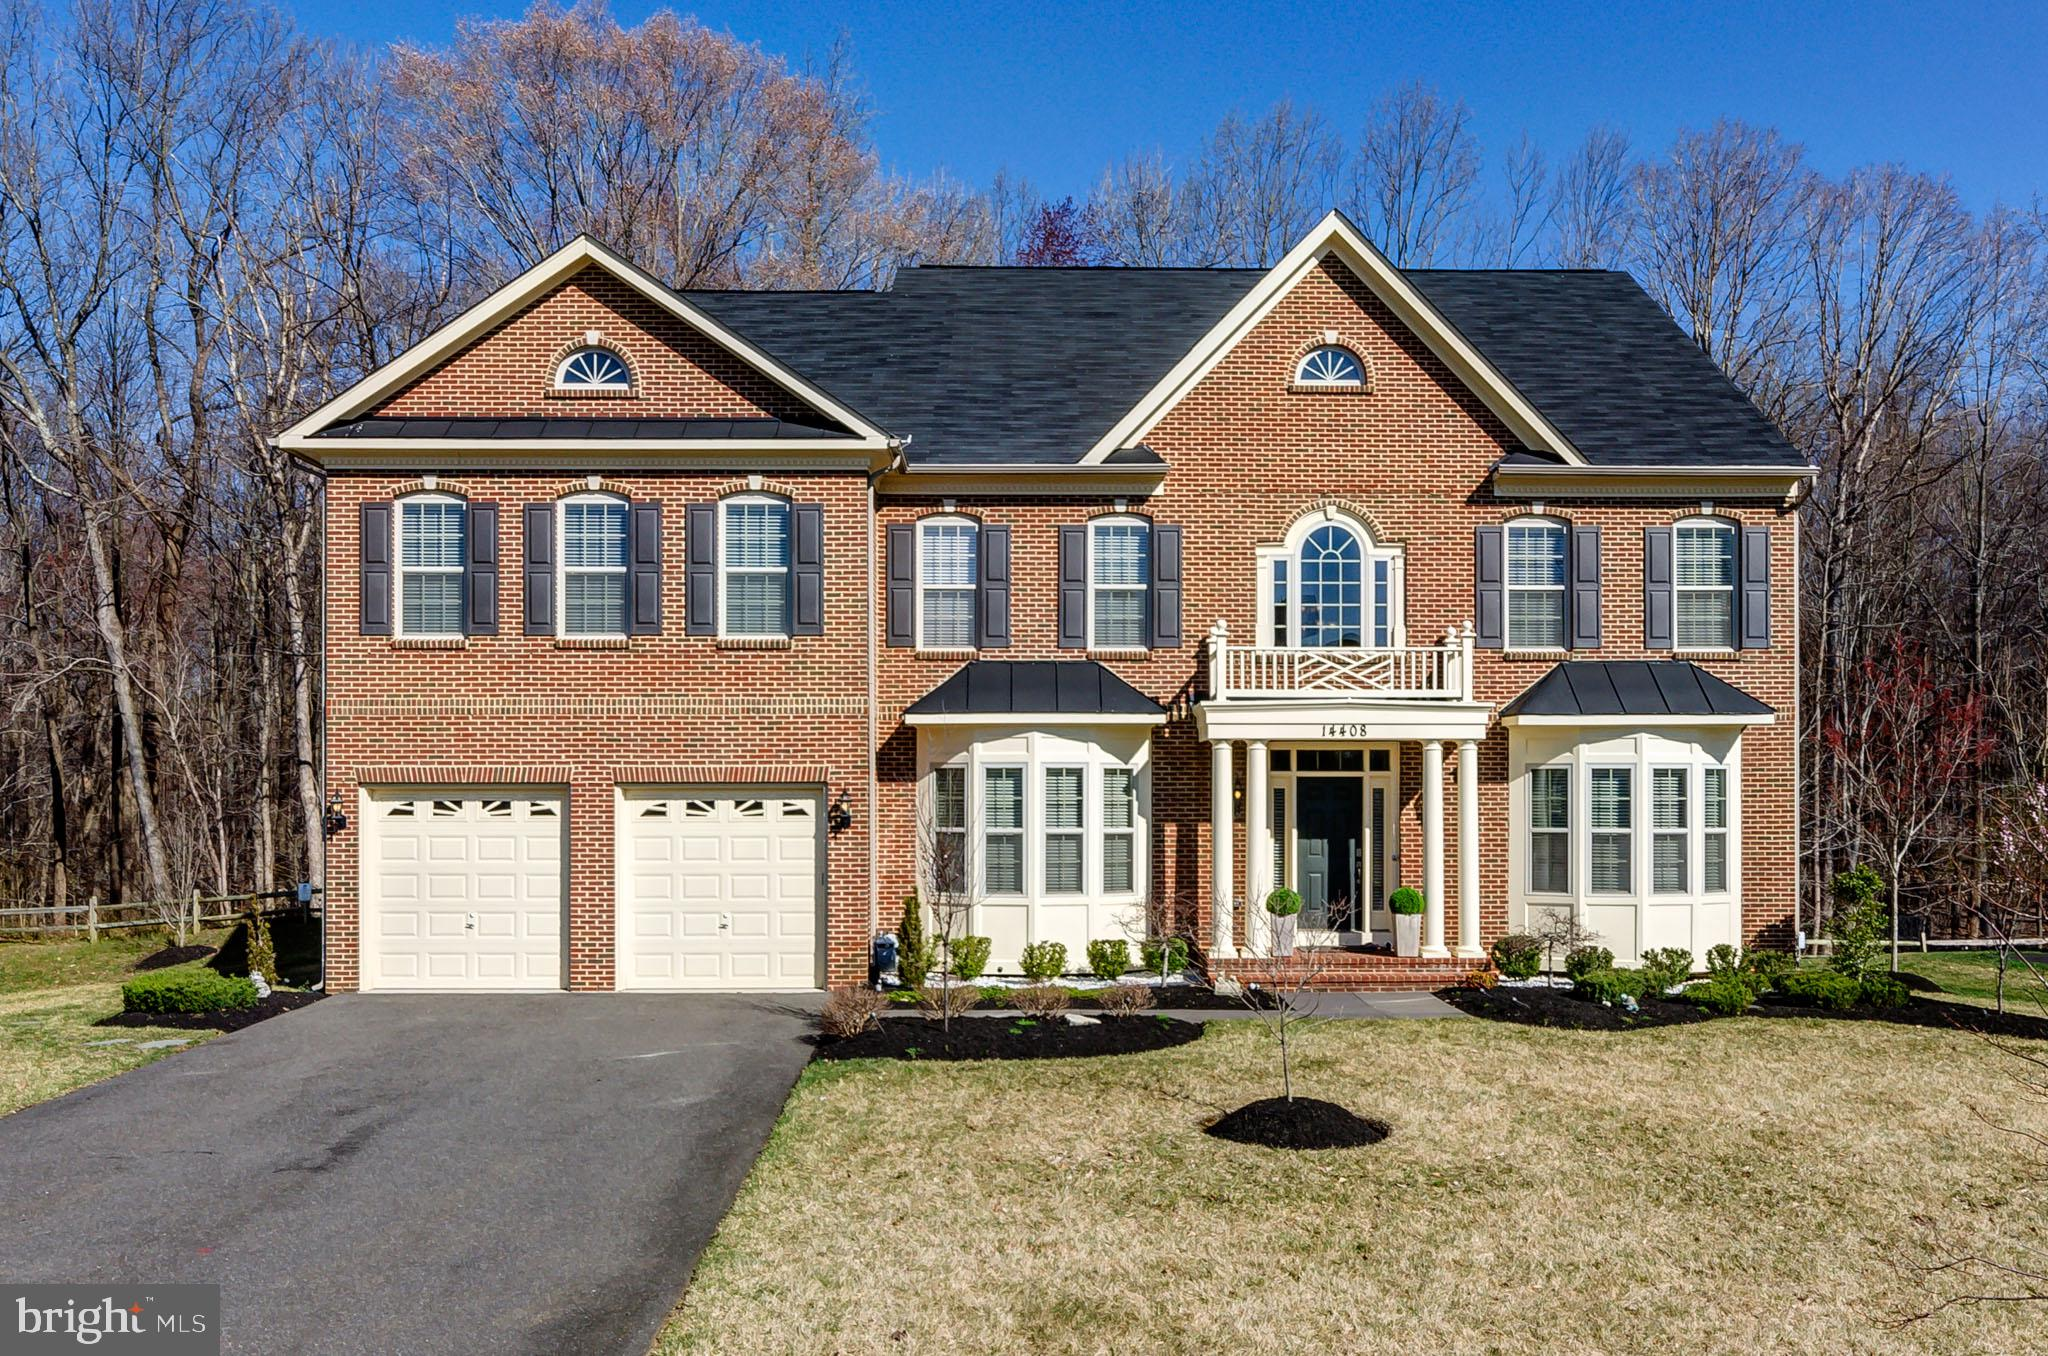 14408 DERBY RIDGE ROAD, BOWIE, MD 20721